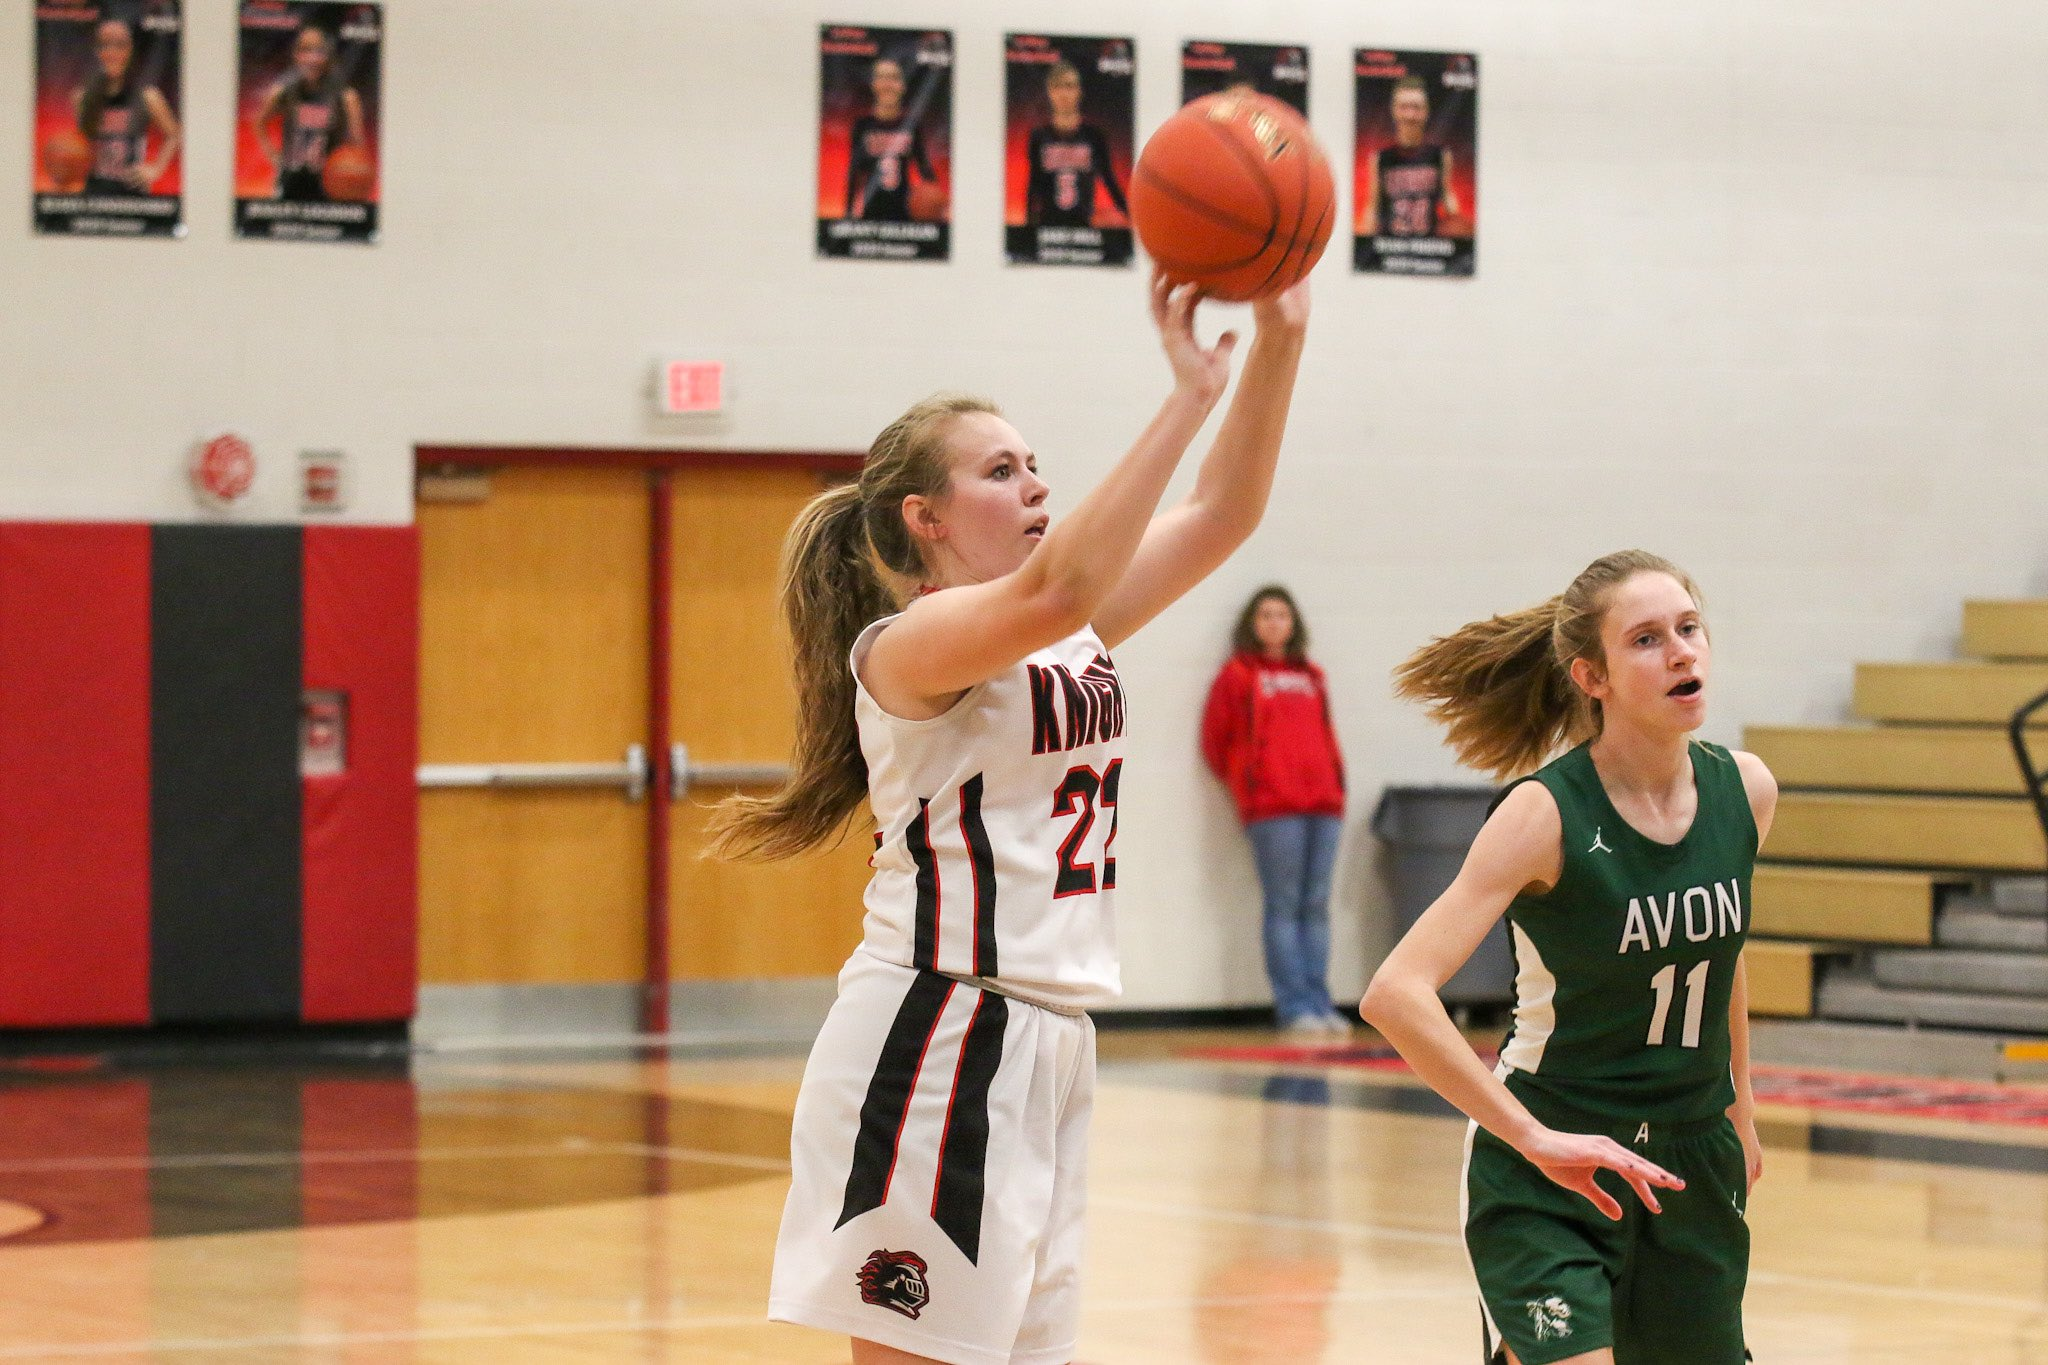 W-FL Thursday: Lyons girls bounce back with win over Sodus; Williamson girls end Red Creeks 4-game win streak